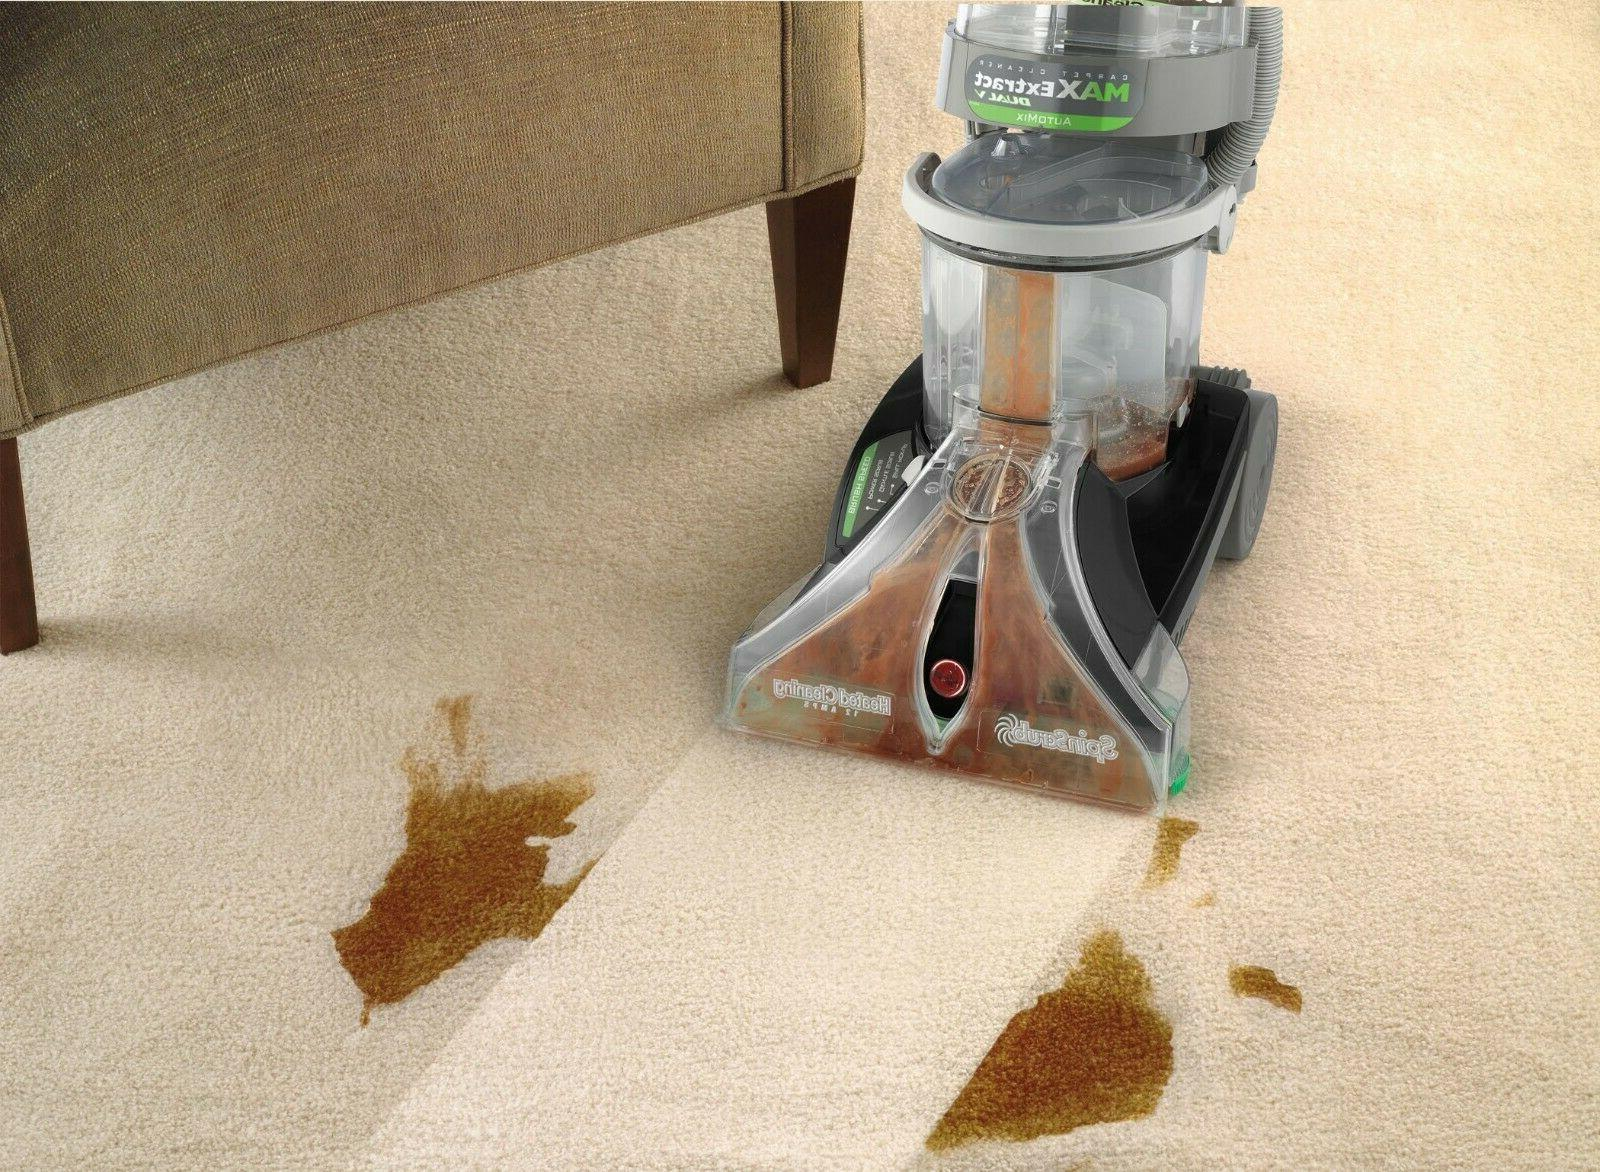 New Hoover F7427-900 Extract Dual Wide Path Cleaner